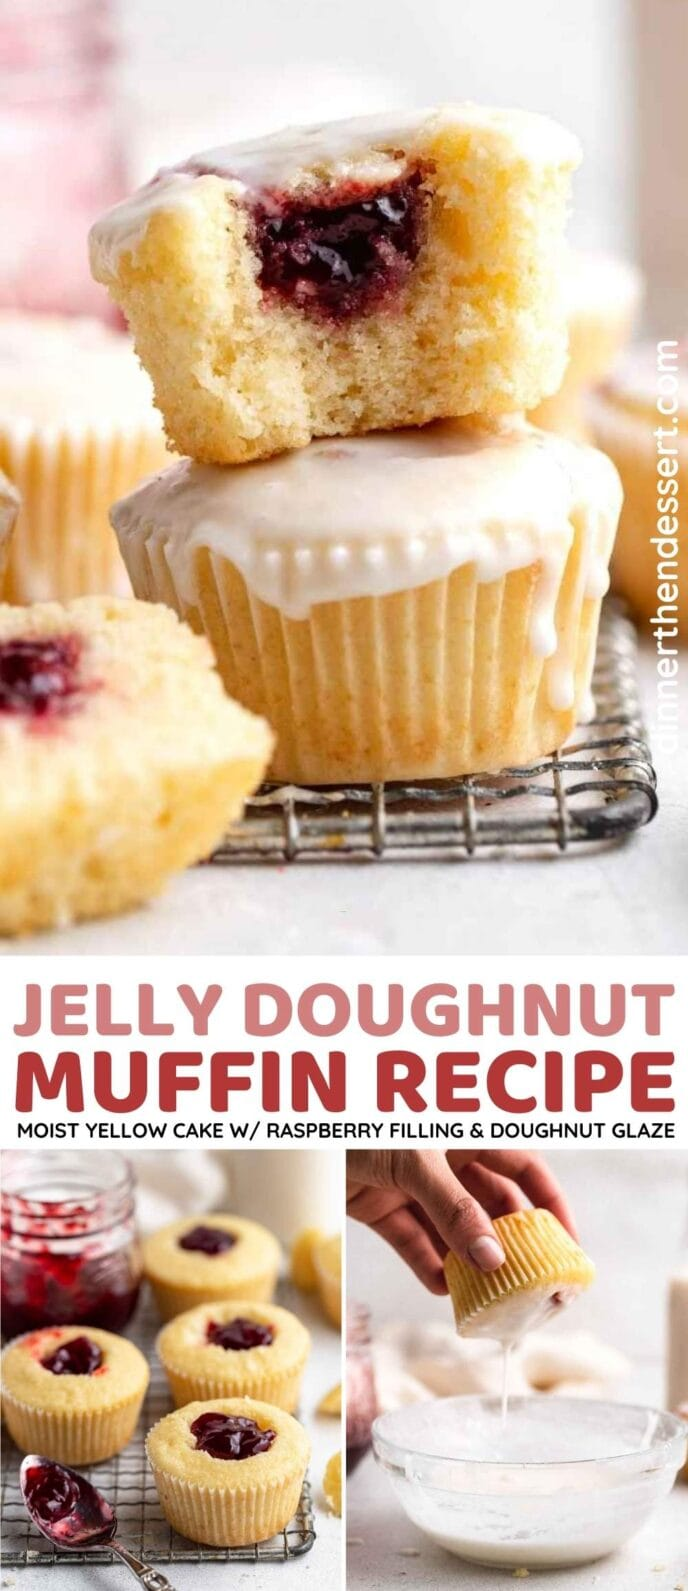 Jelly Doughnut Muffins Collage